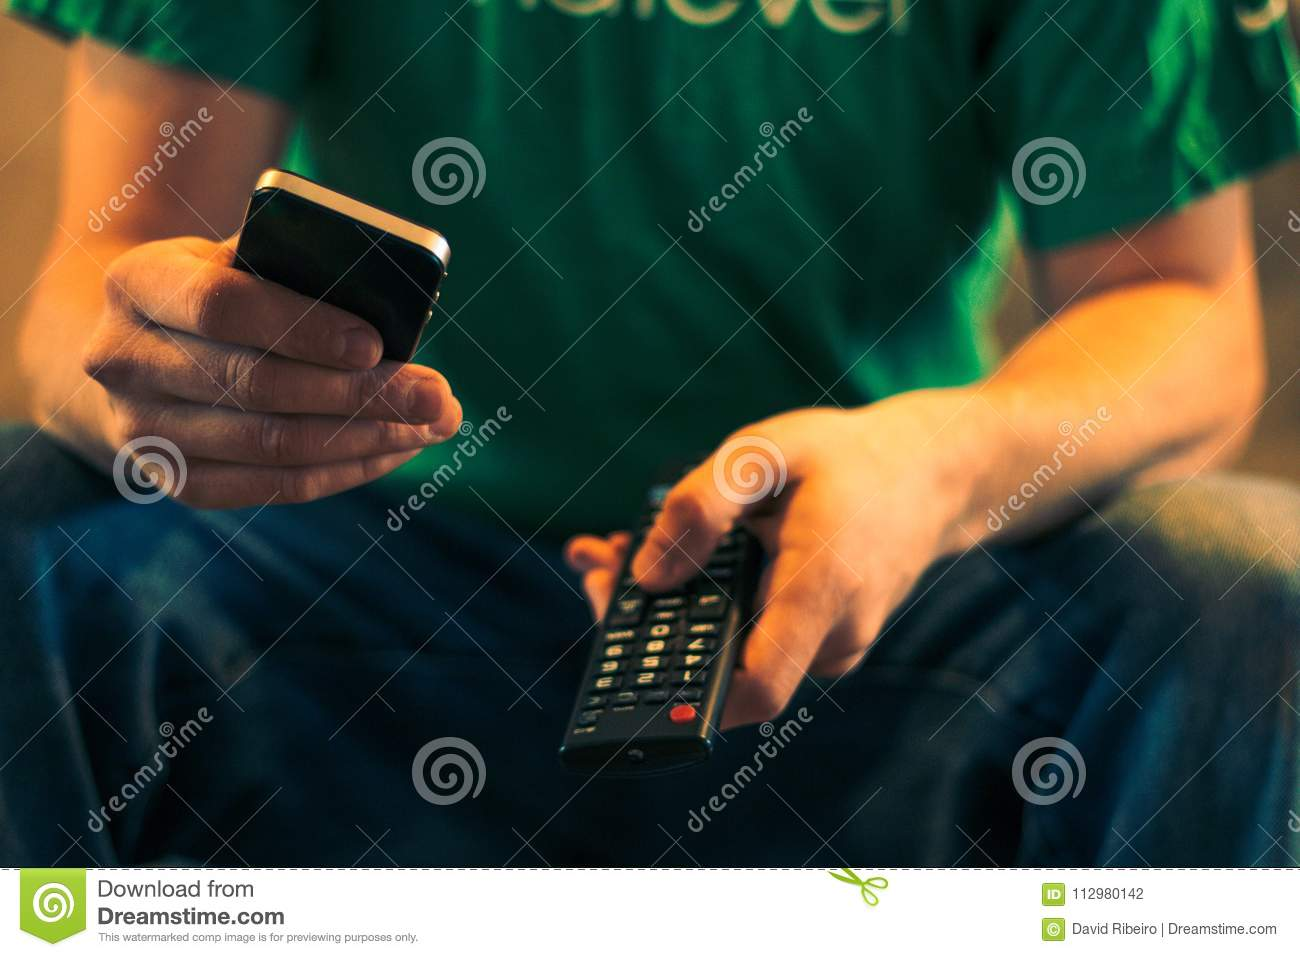 Close up of a man holding a cell phone and a tv remote control